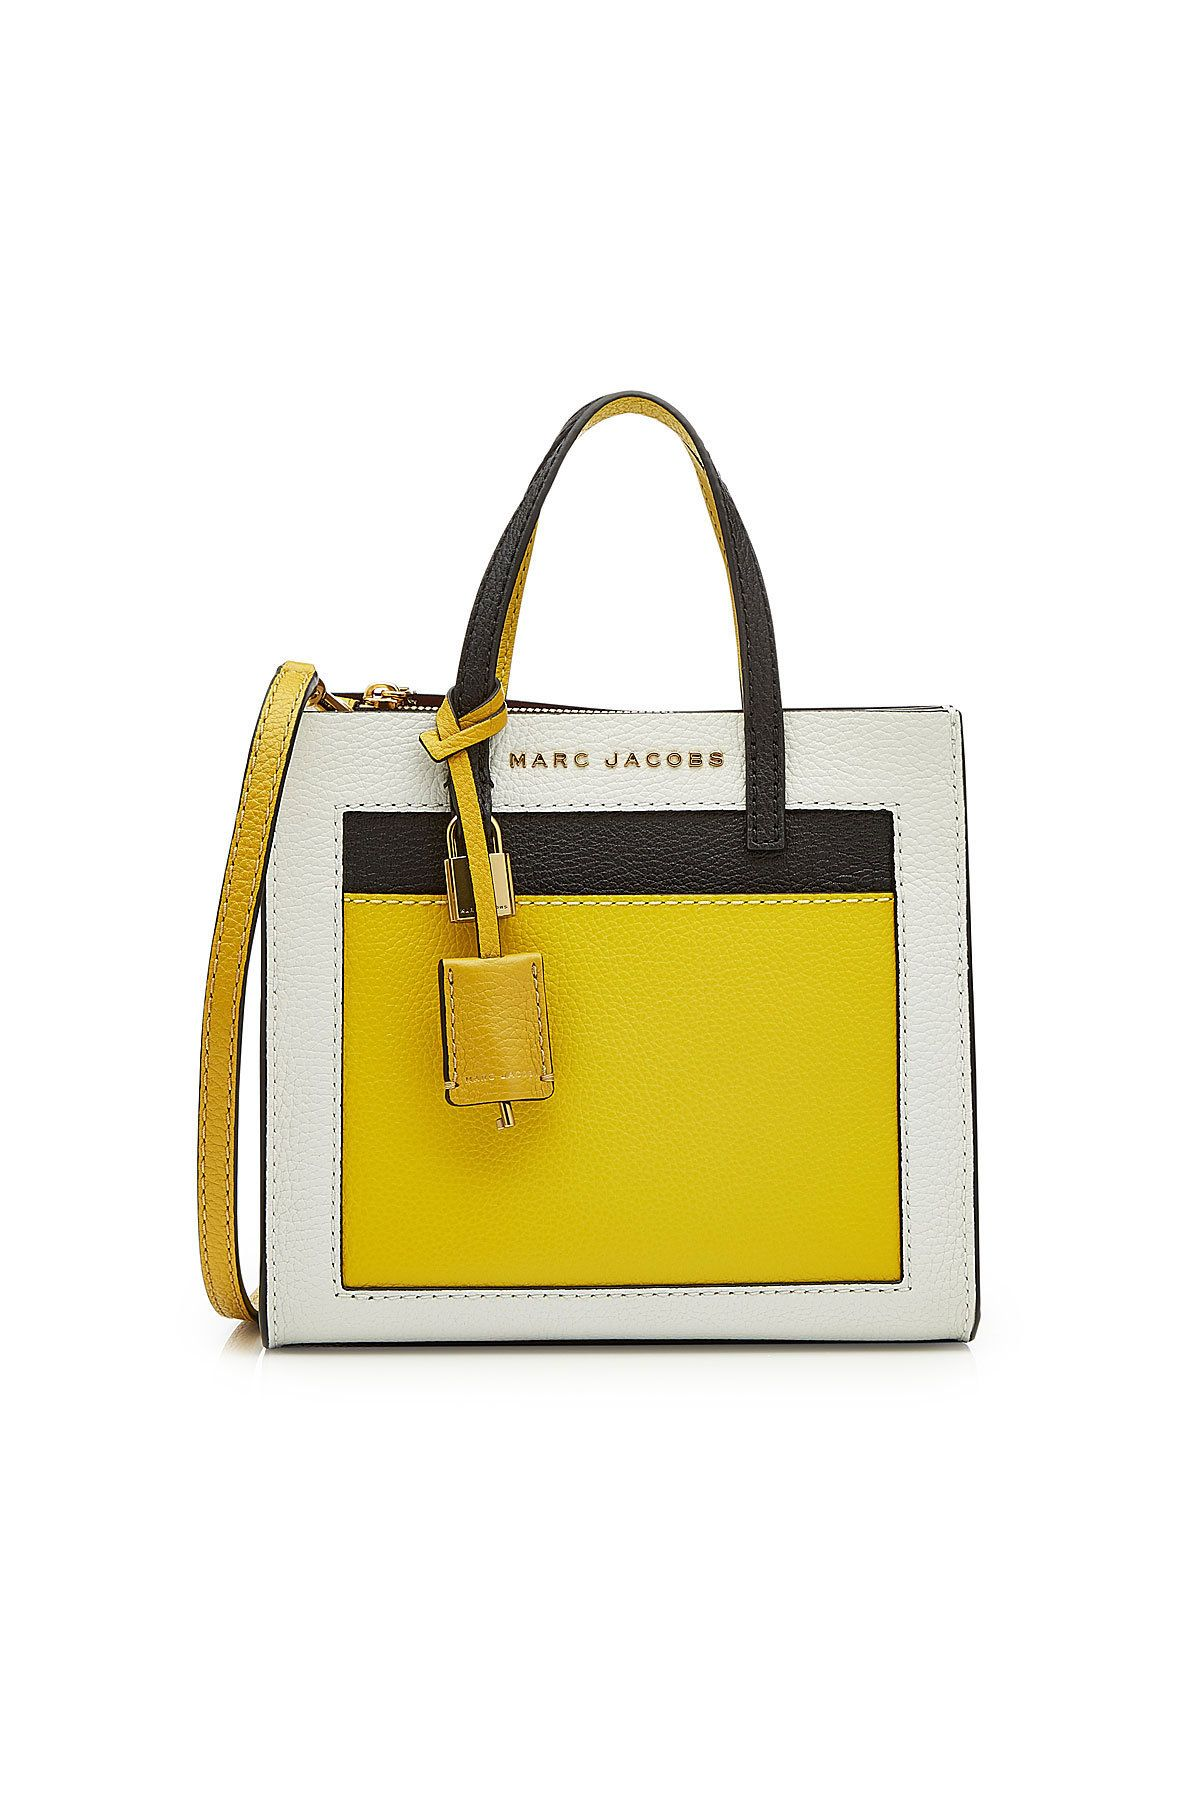 285acbd3a4019 MARC JACOBS MINI GRIND LEATHER TOTE.  marcjacobs  bags  leather  hand bags   tote